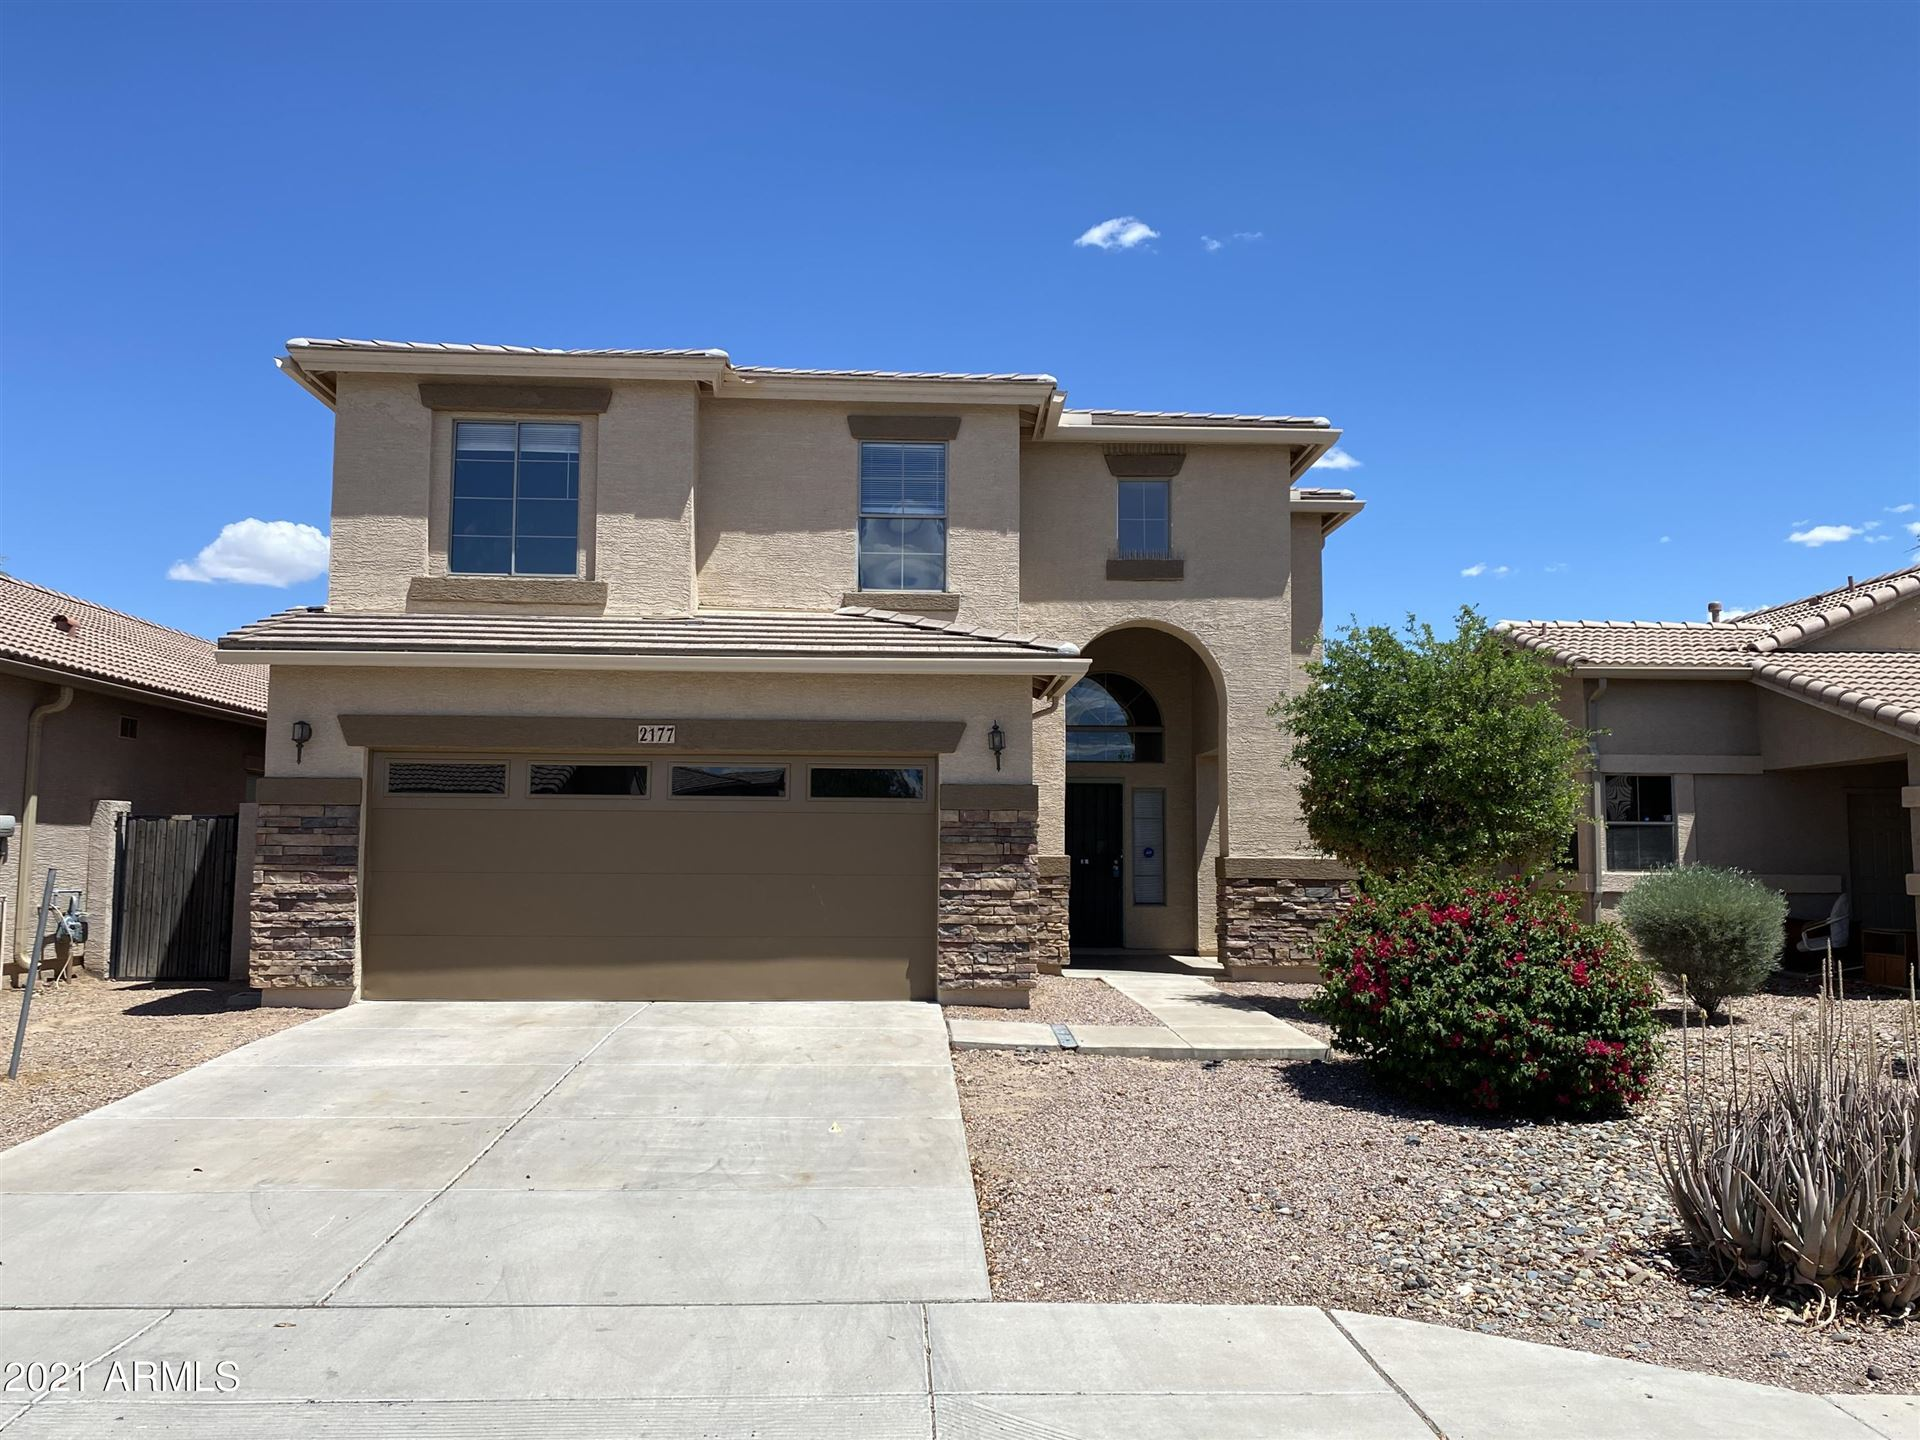 Photo of 2177 S 88TH Avenue, Tolleson, AZ 85353 (MLS # 6228376)